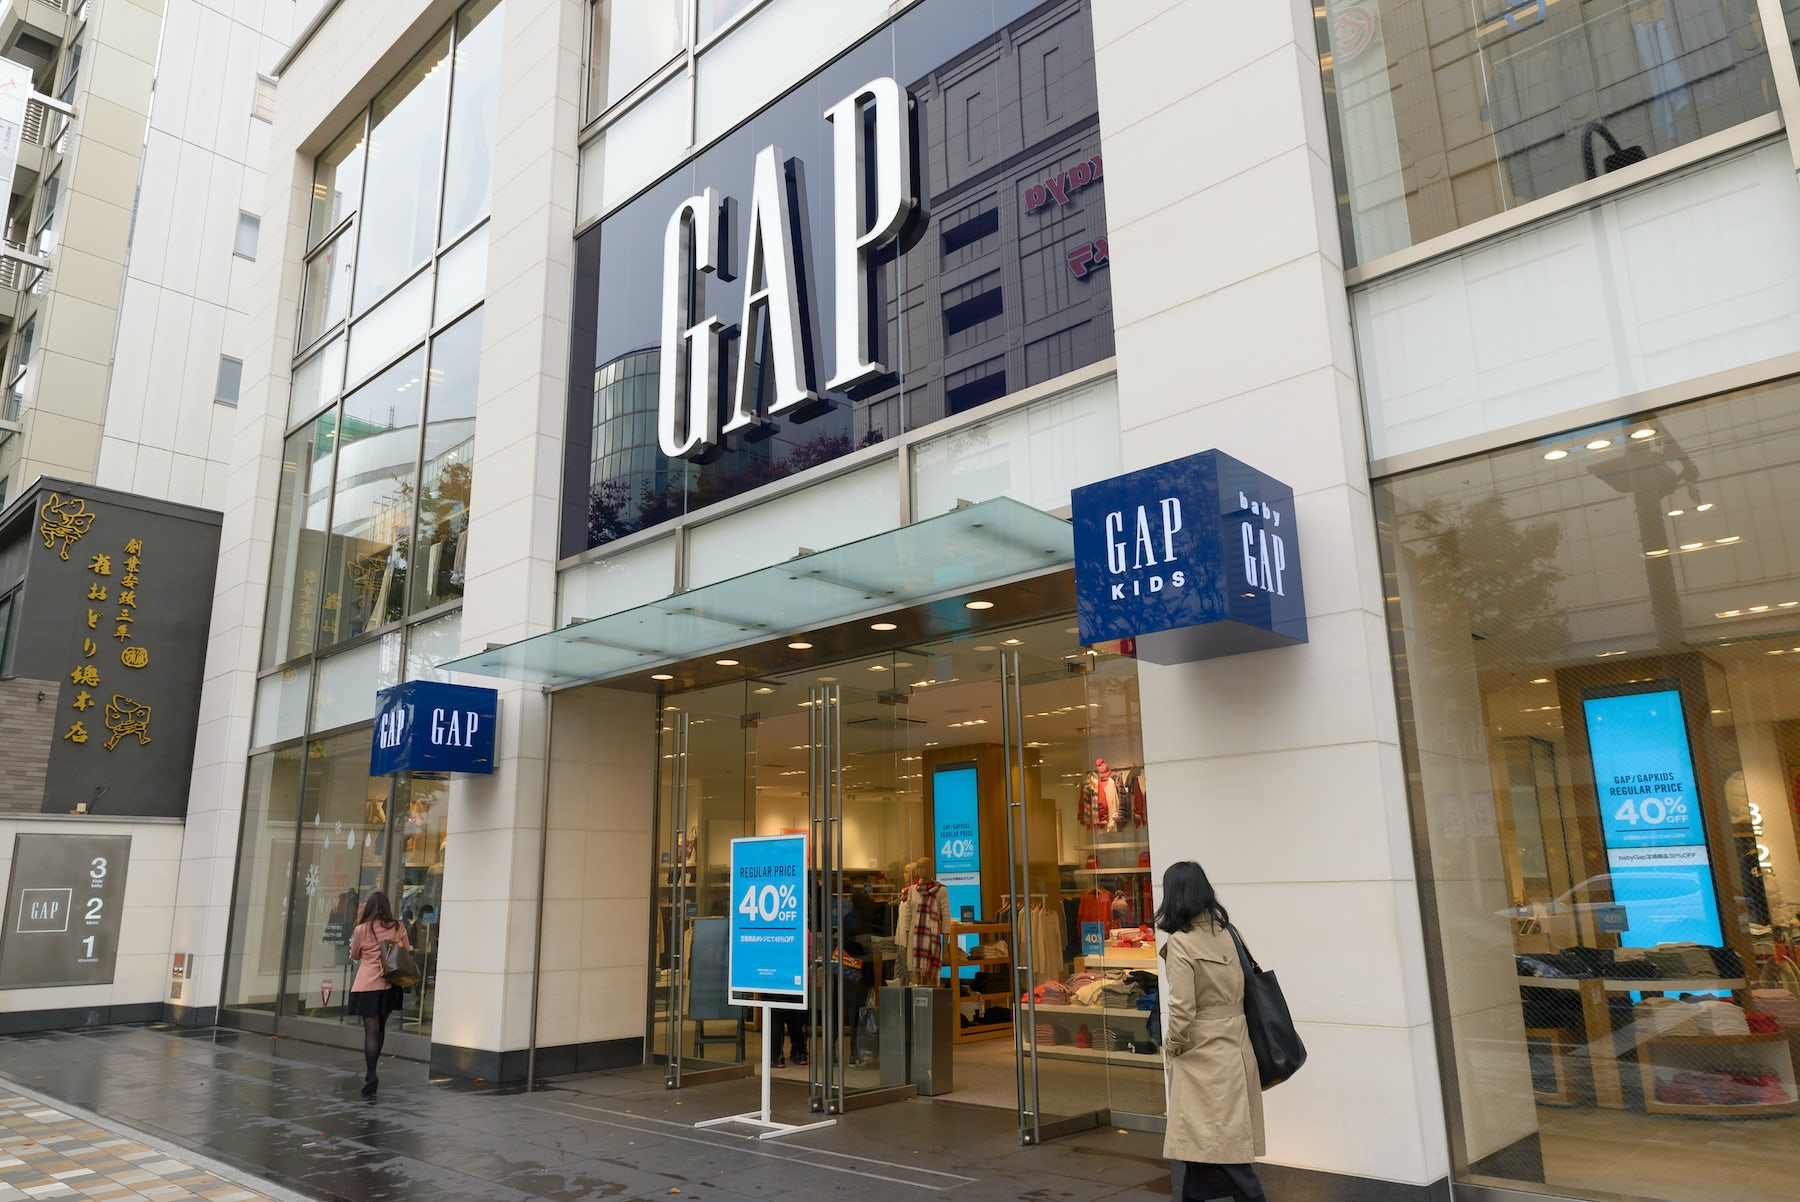 Gap Taps Into the Surging Corporate Demand for Face Masks